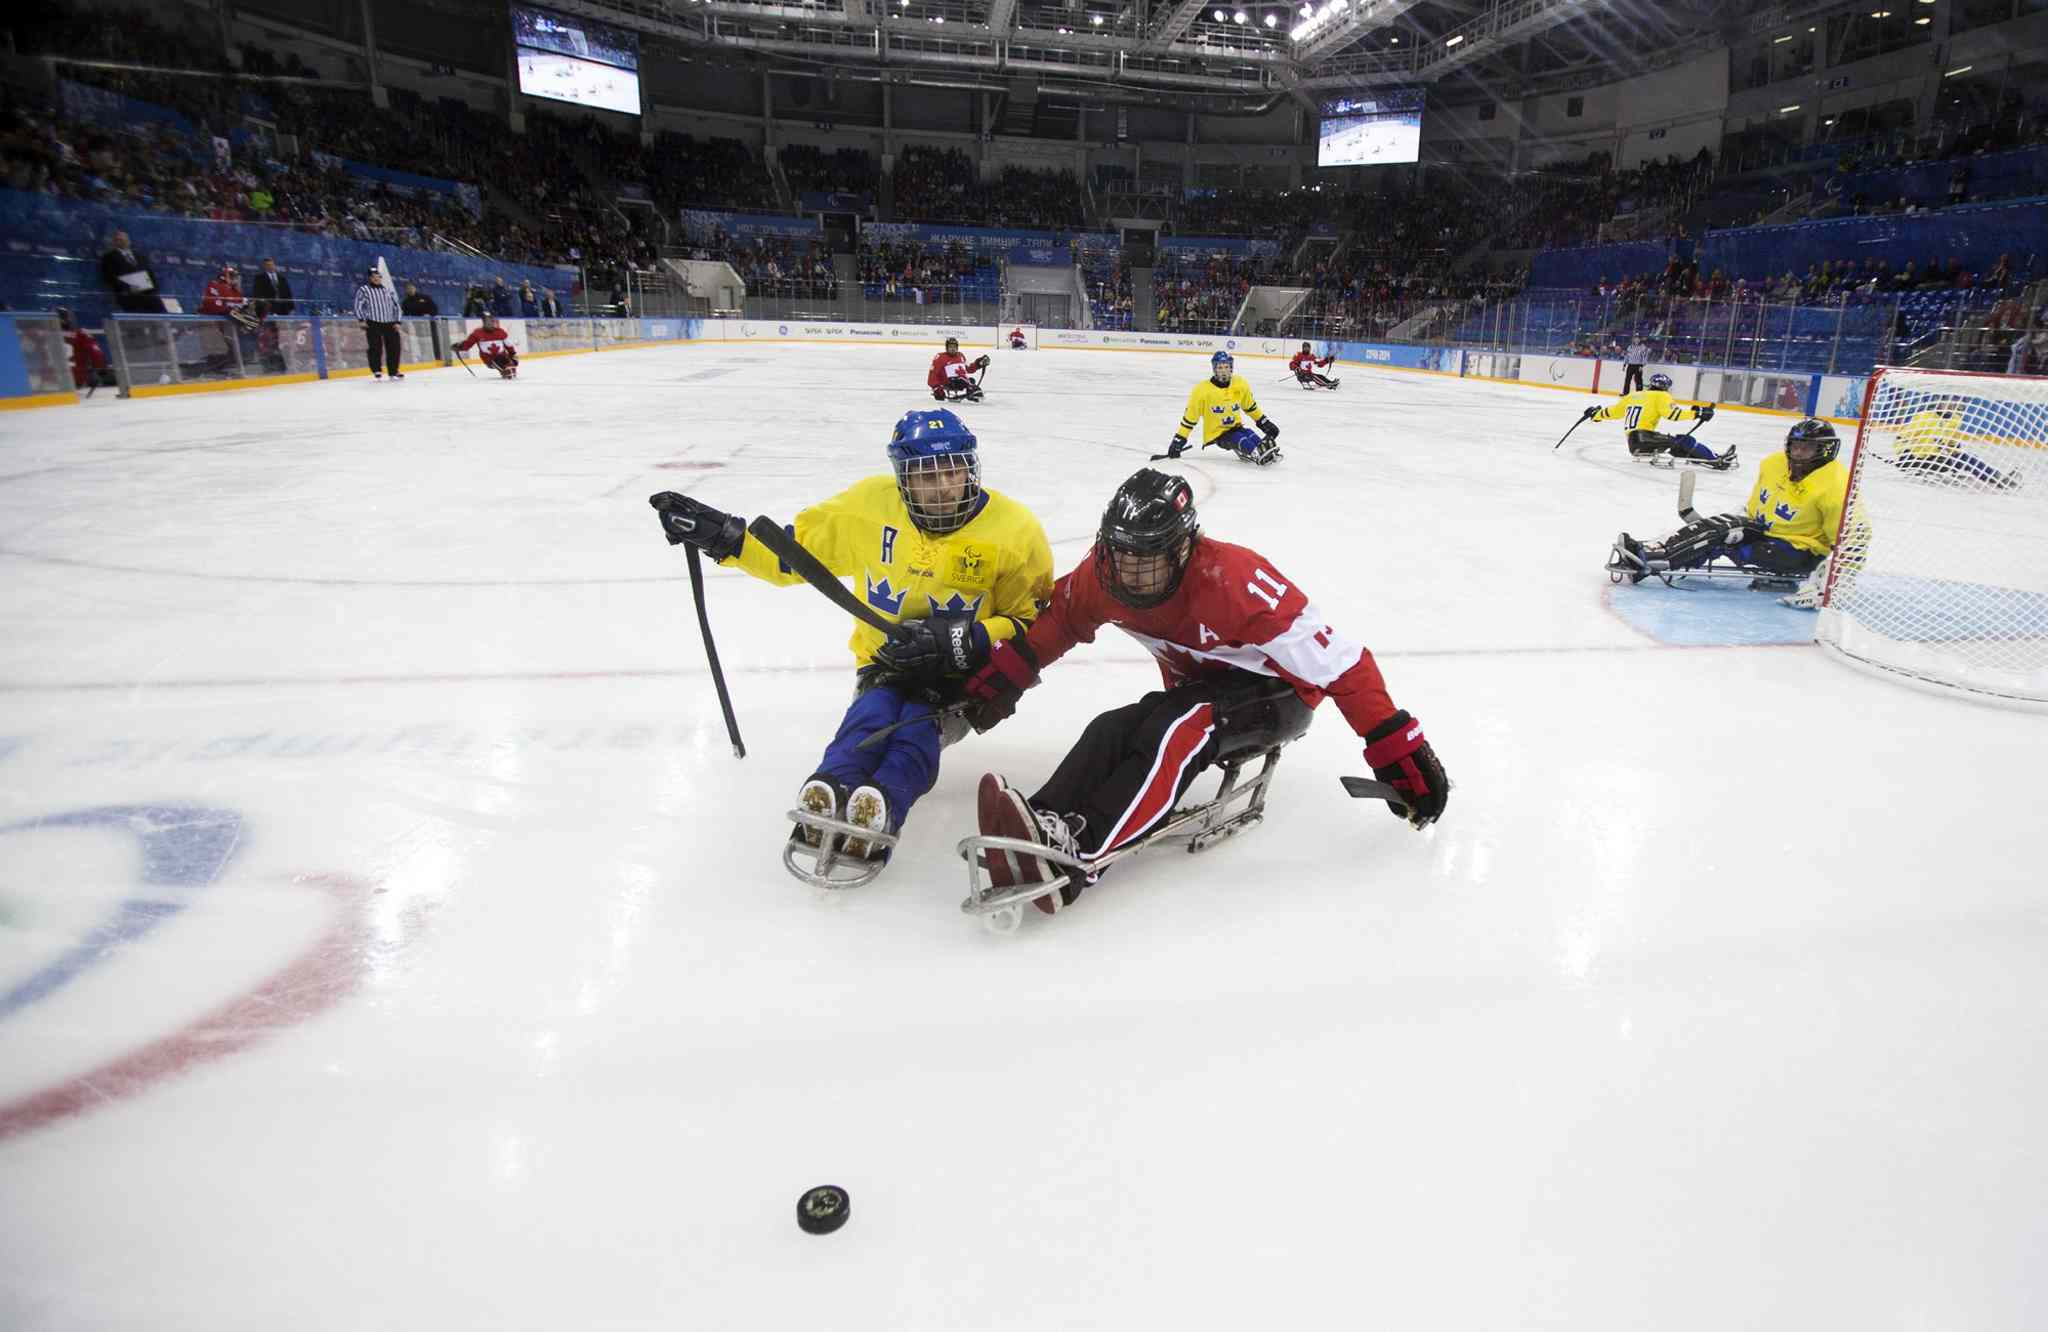 Marcus Holm of Sweden, center left, and Adam Dixon of Canada, center right, chase the puck during the ice sledge hockey match at the Shayba Arena at the 2014 Winter Paralympics in Sochi, Russia, Saturday, March 8, 2014.